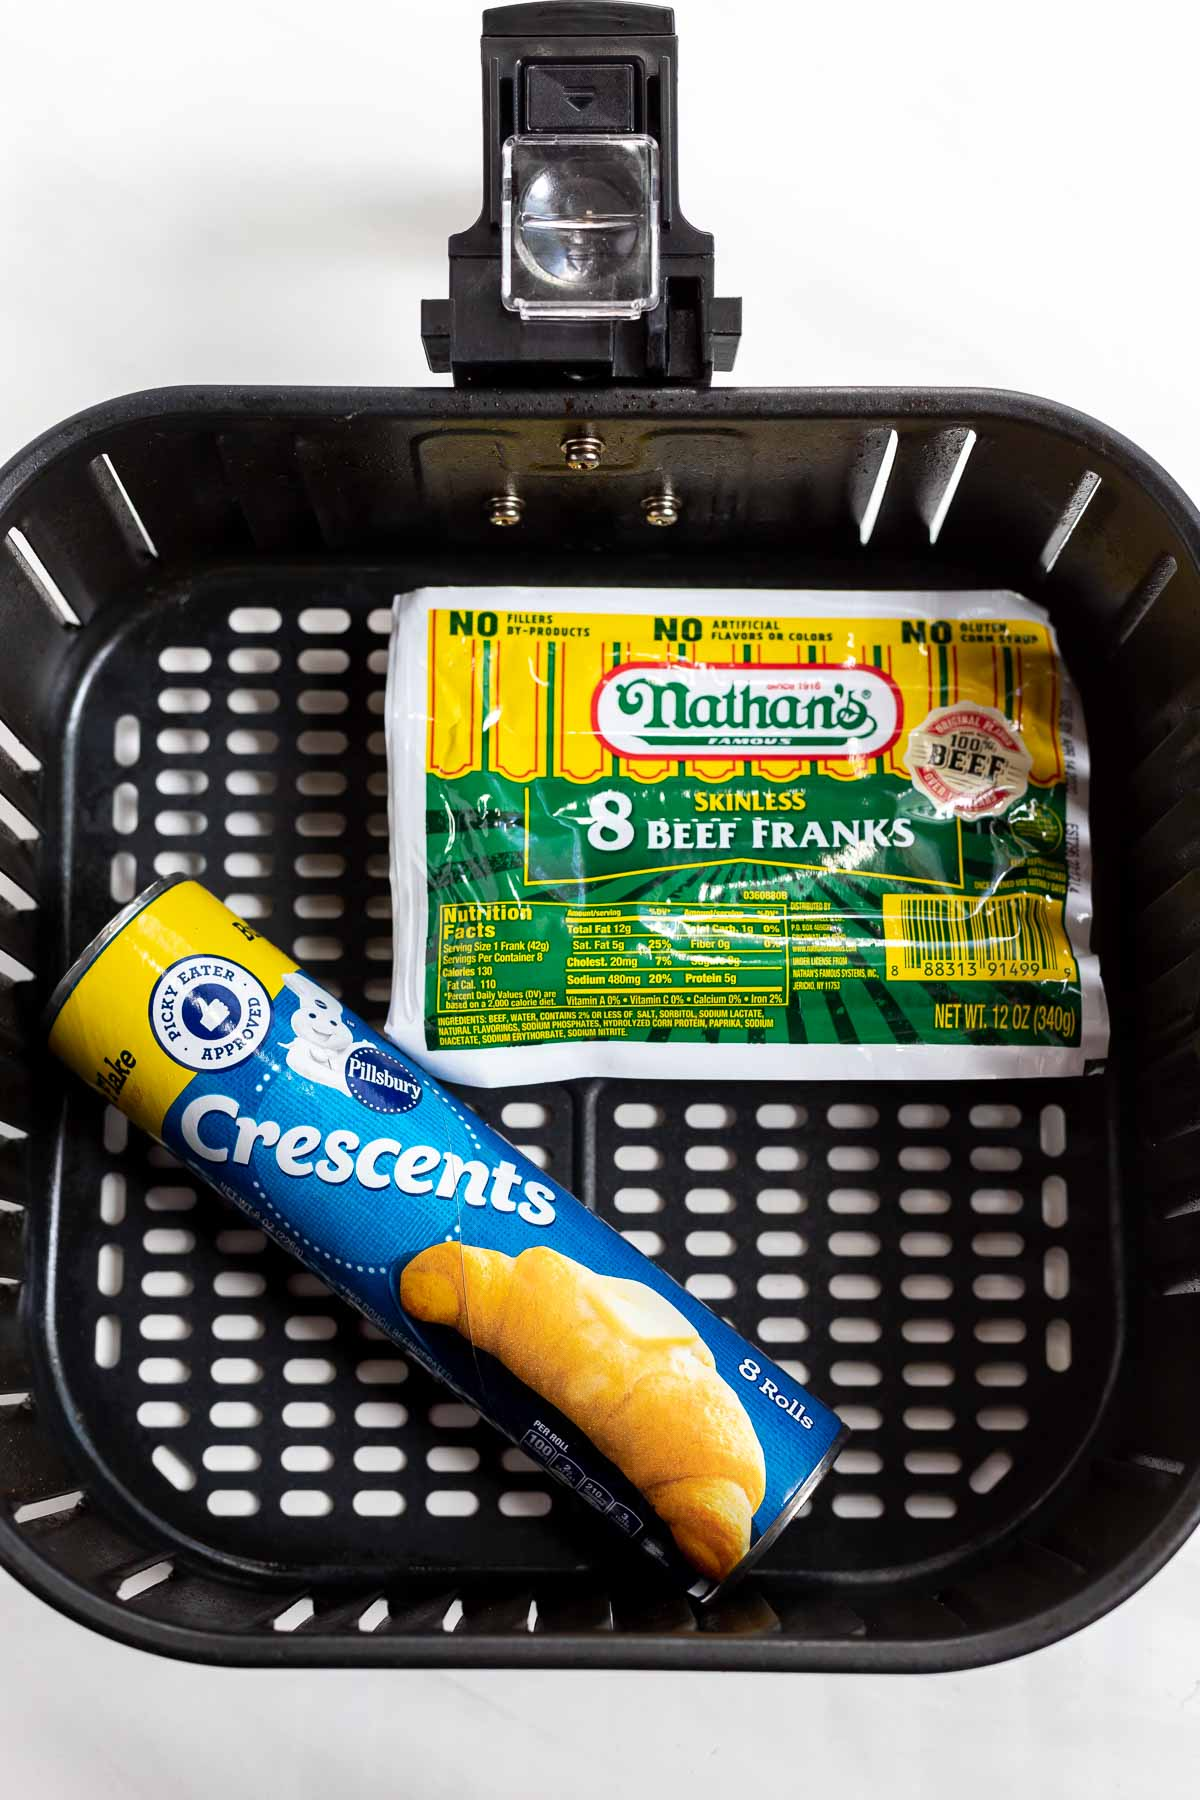 pack of hot dogs and crescent roll tube in air fryer basket